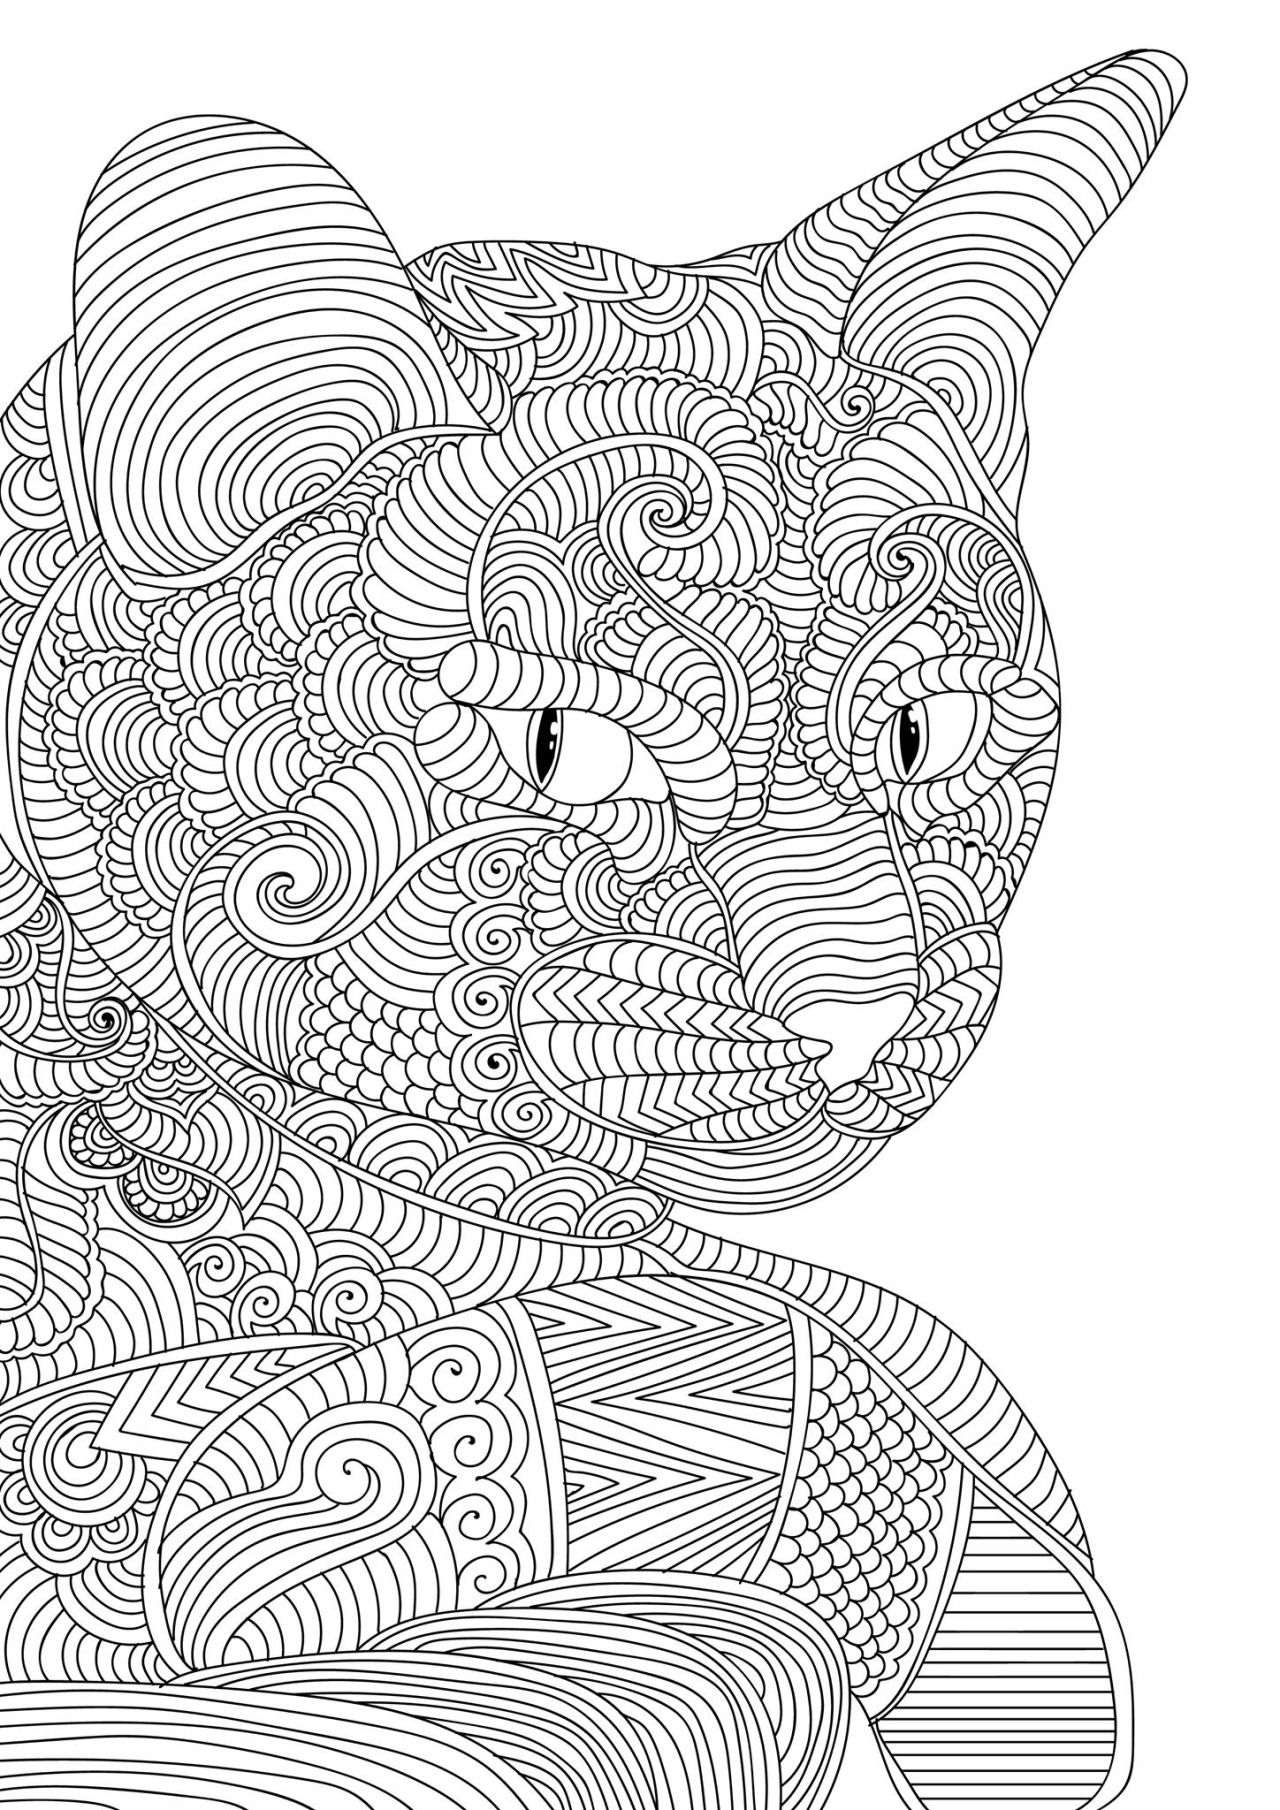 Hey Everyone We Just Finished The 30 Colorful Cats For Stress Relief Adult Coloring Book For The Rest Of Today Only Mandala Kleurplaten Kleurplaten Kleurboek